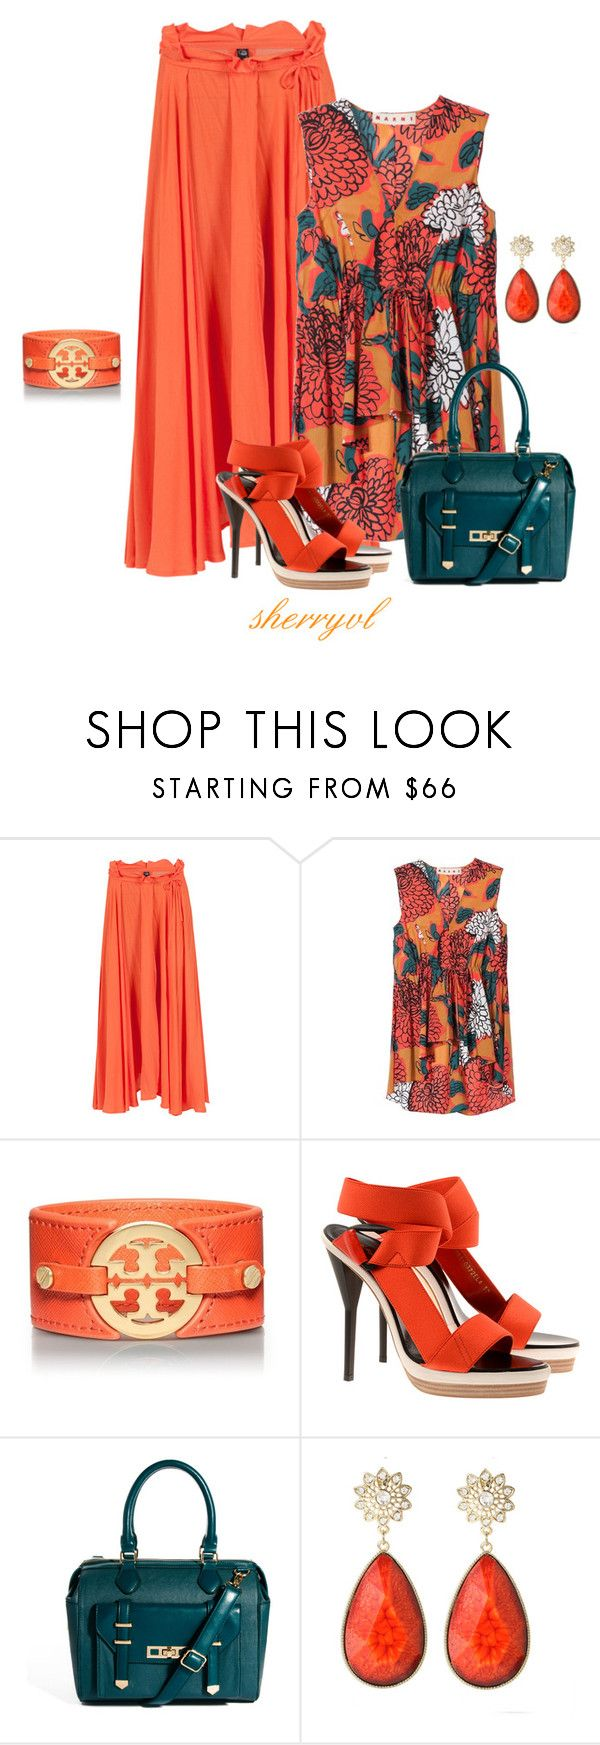 """""""Marni Blouse And A Maxi Skirt"""" by sherryvl ❤ liked on Polyvore featuring Cheap Monday, Marni, Tory Burch, 3.1 Phillip Lim, ASOS and Amrita Singh"""